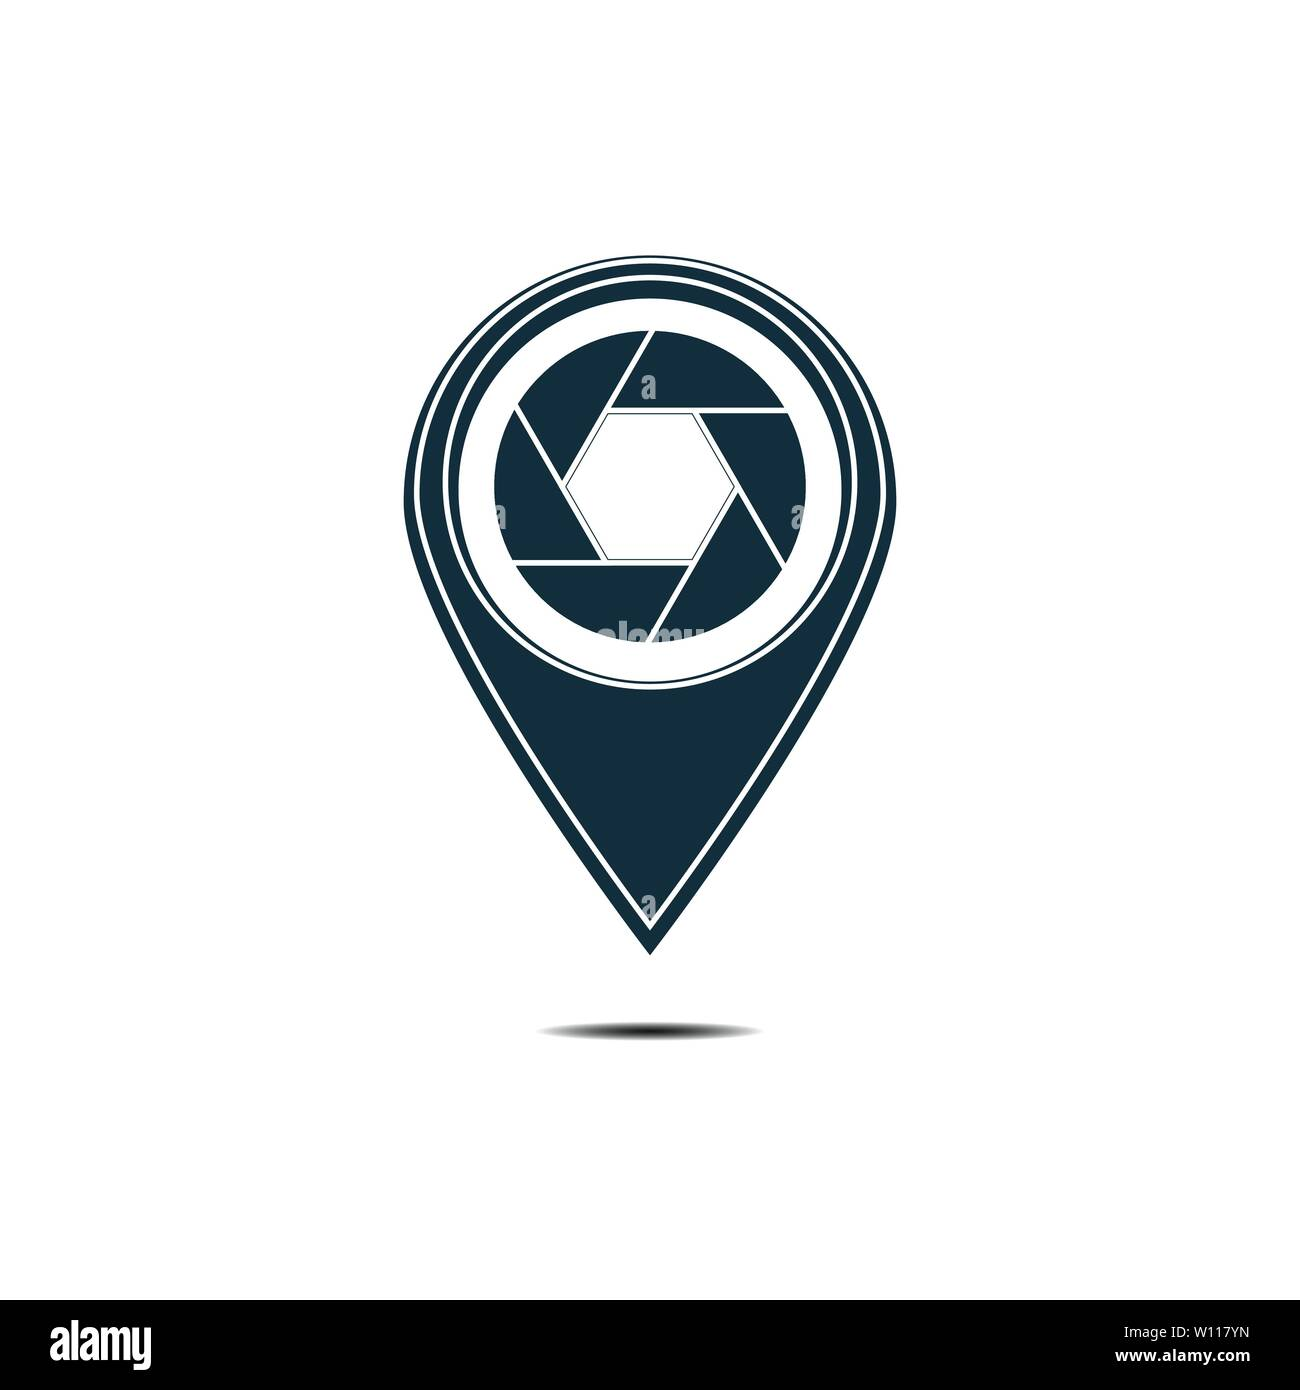 photo locator camera logo template design - Stock Vector